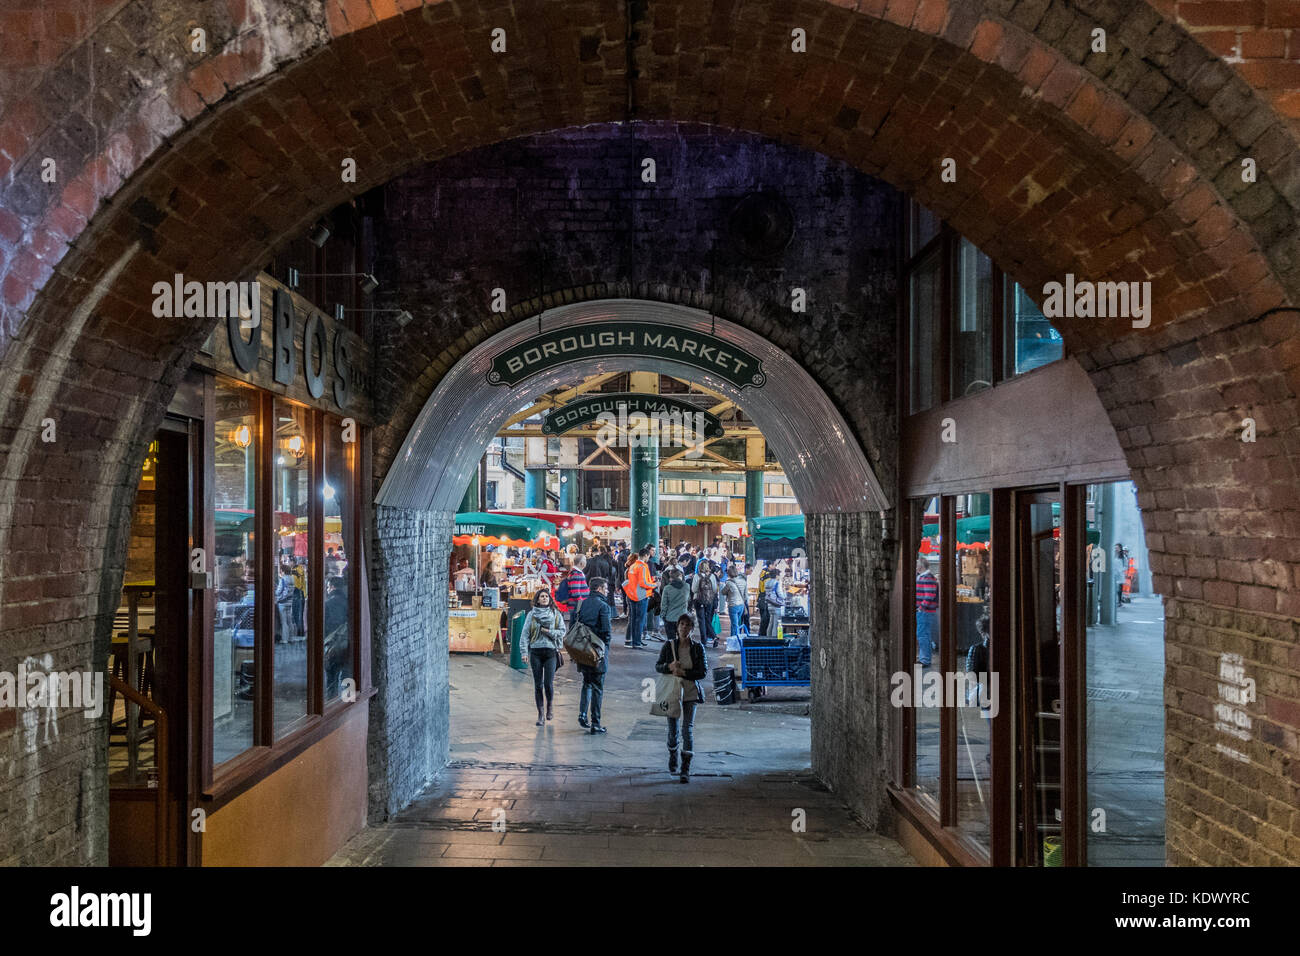 Borough Market archway entrance - Stock Image